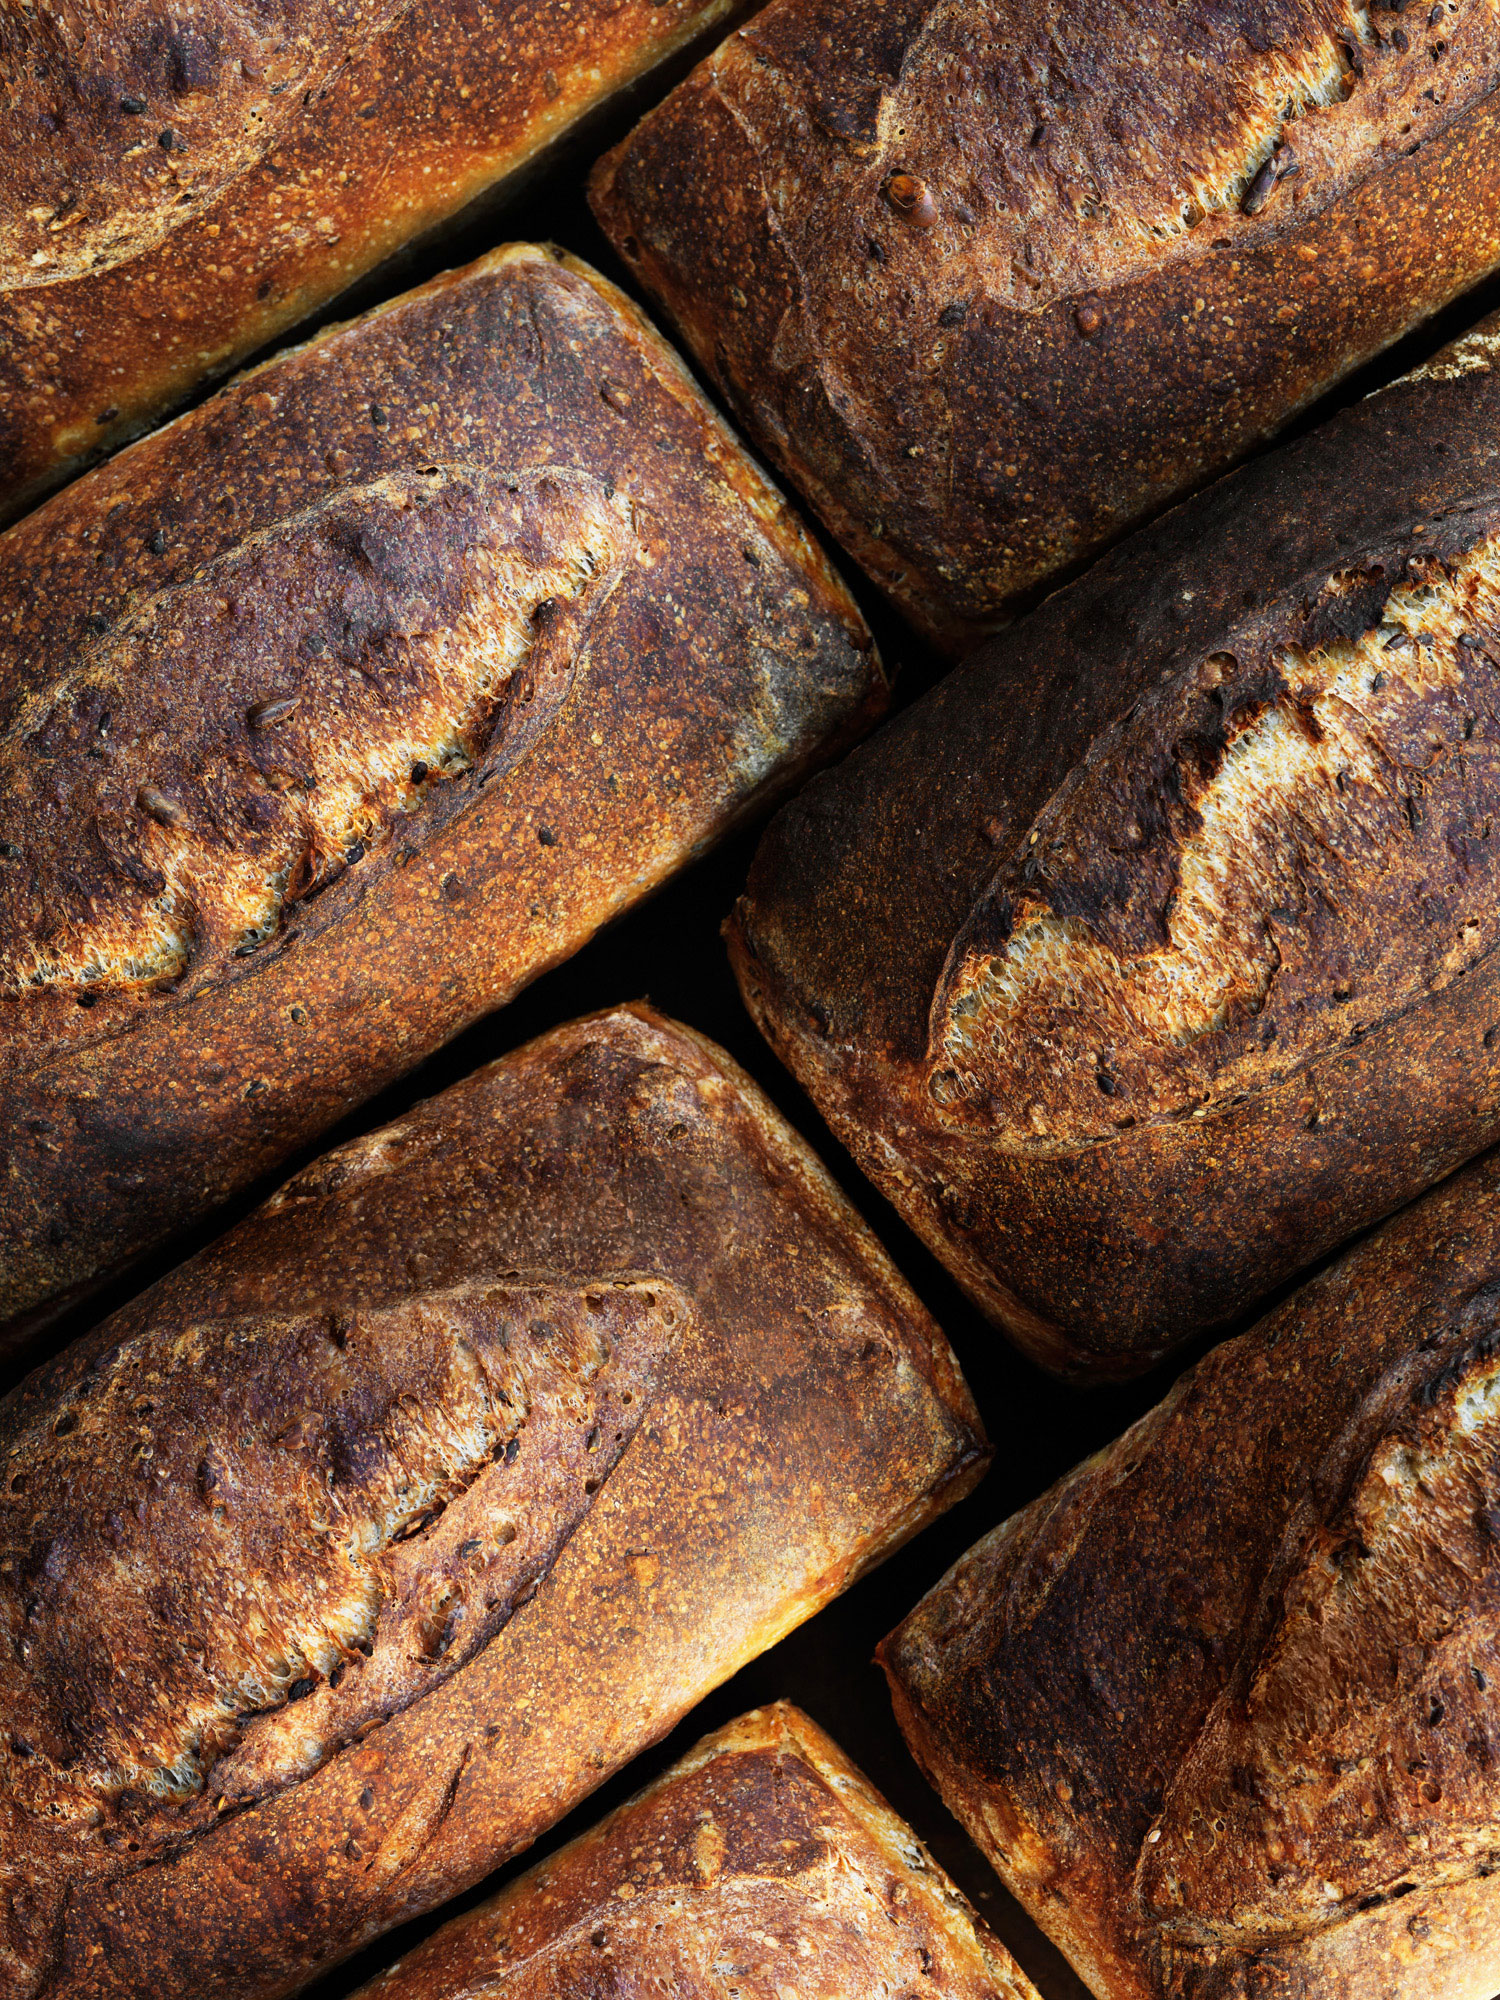 San Francisco's Sourdough Bread Renaissance